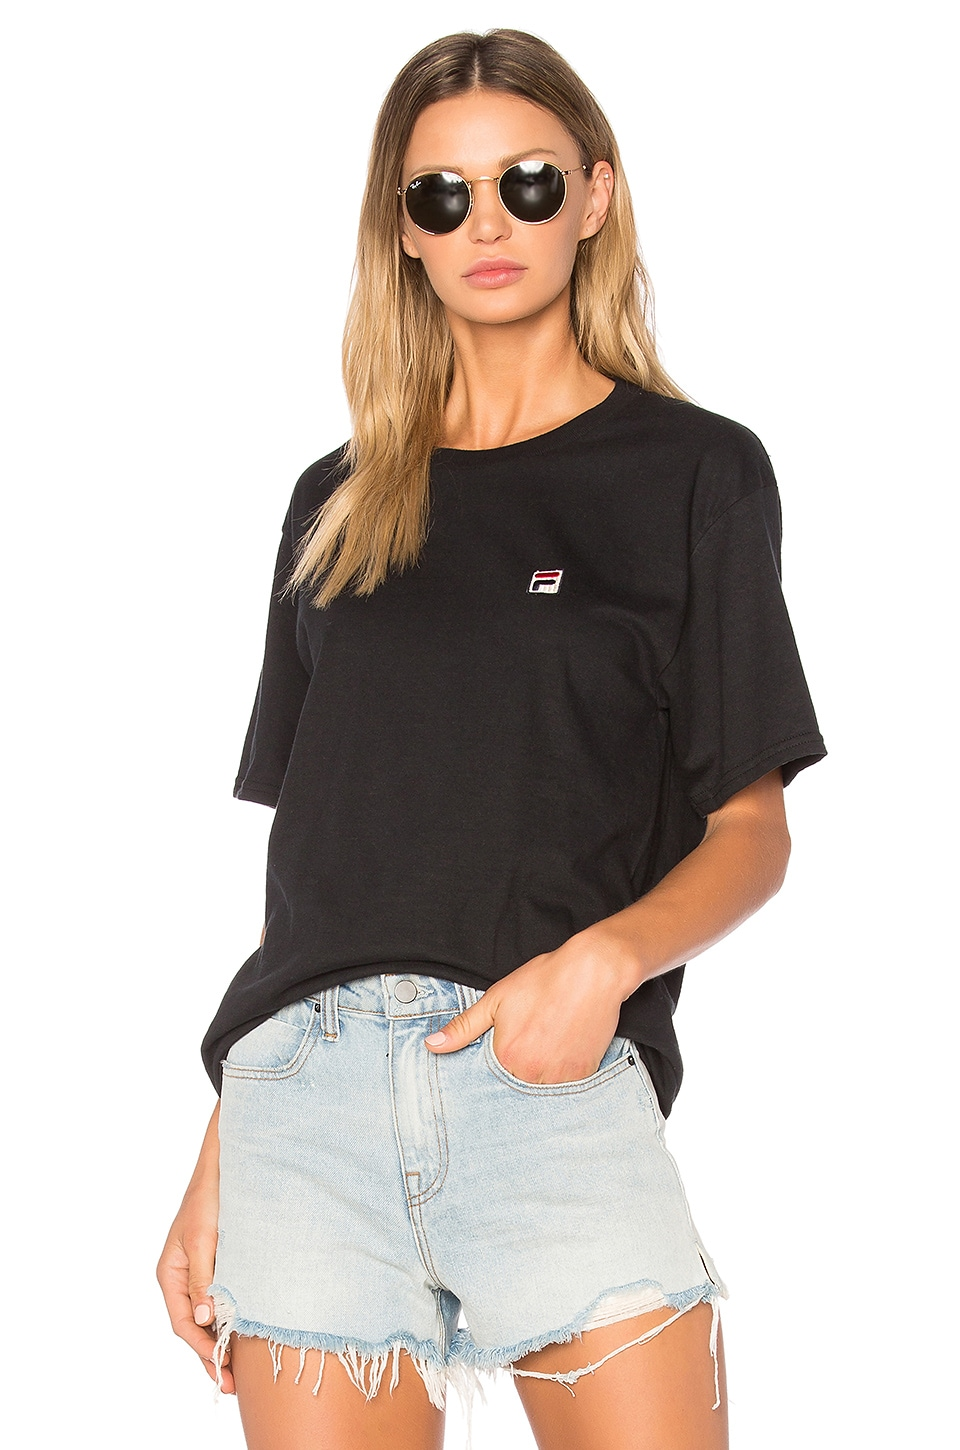 Fila F Box Tee in Black